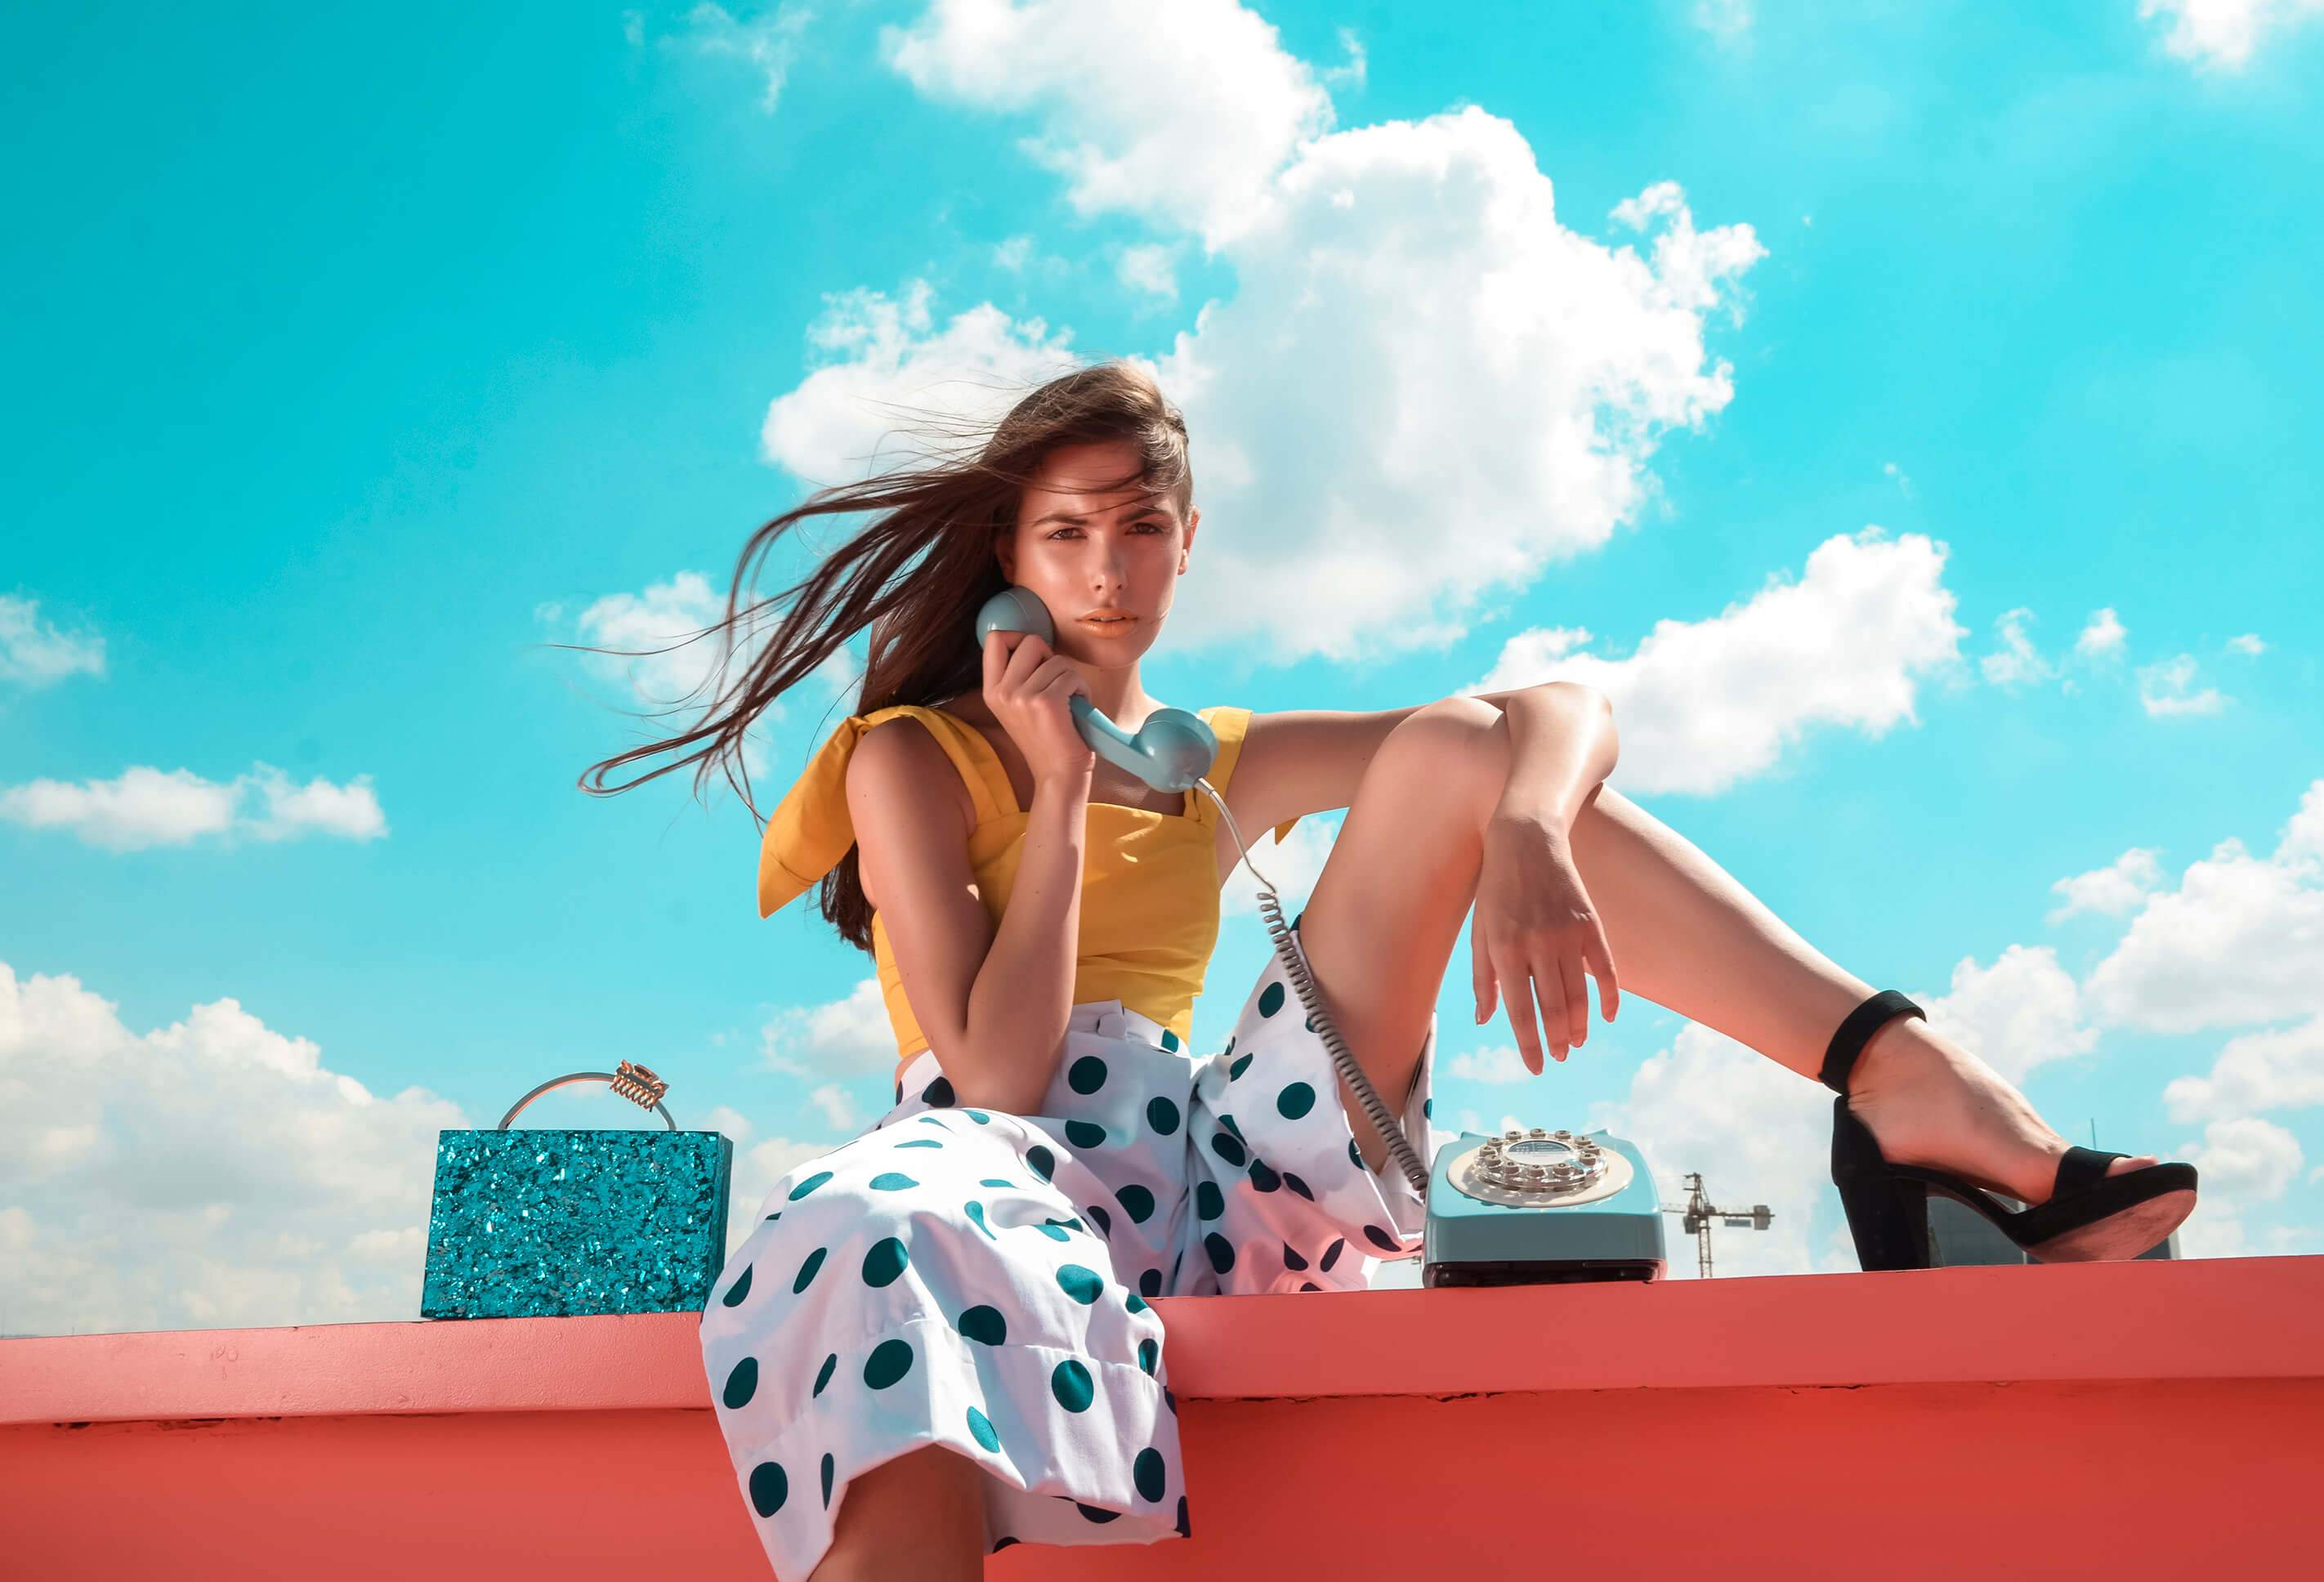 L'alingi London Spring-Summer 2019 Lookbook cover with a model holding a classic blue phone with a blue halana box clutch on the side